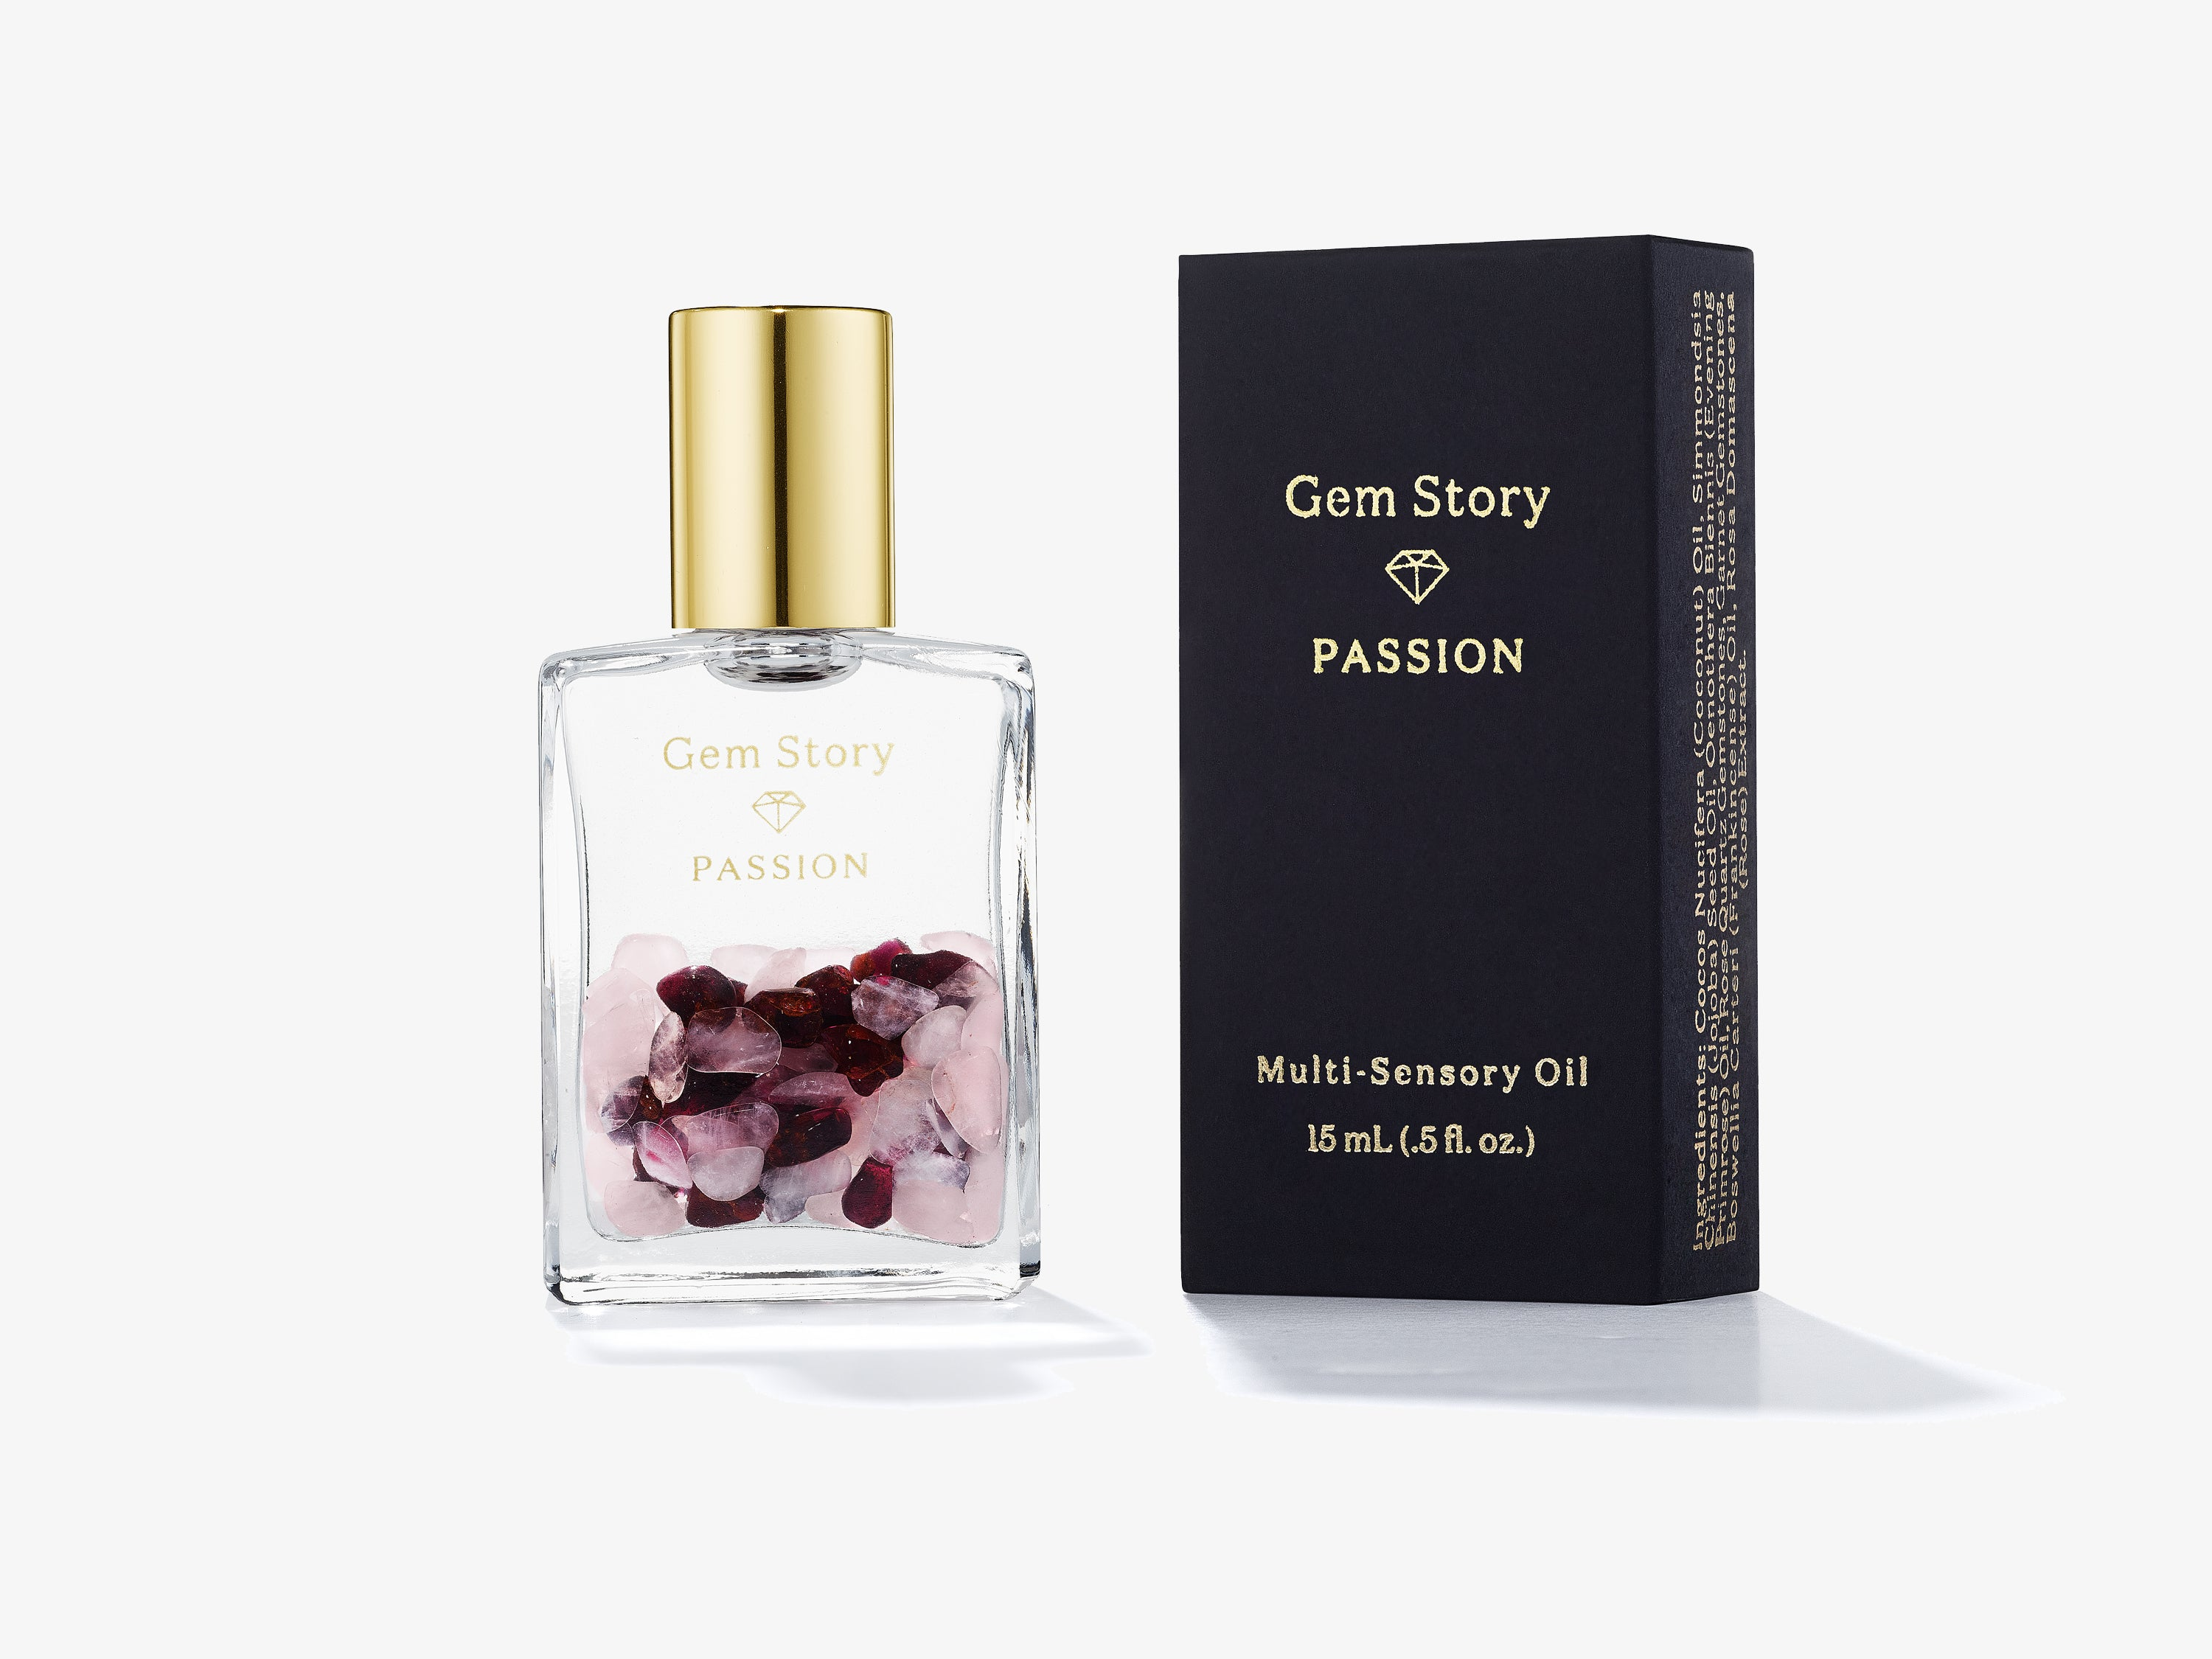 Passion Gem Story Oil (15ml)